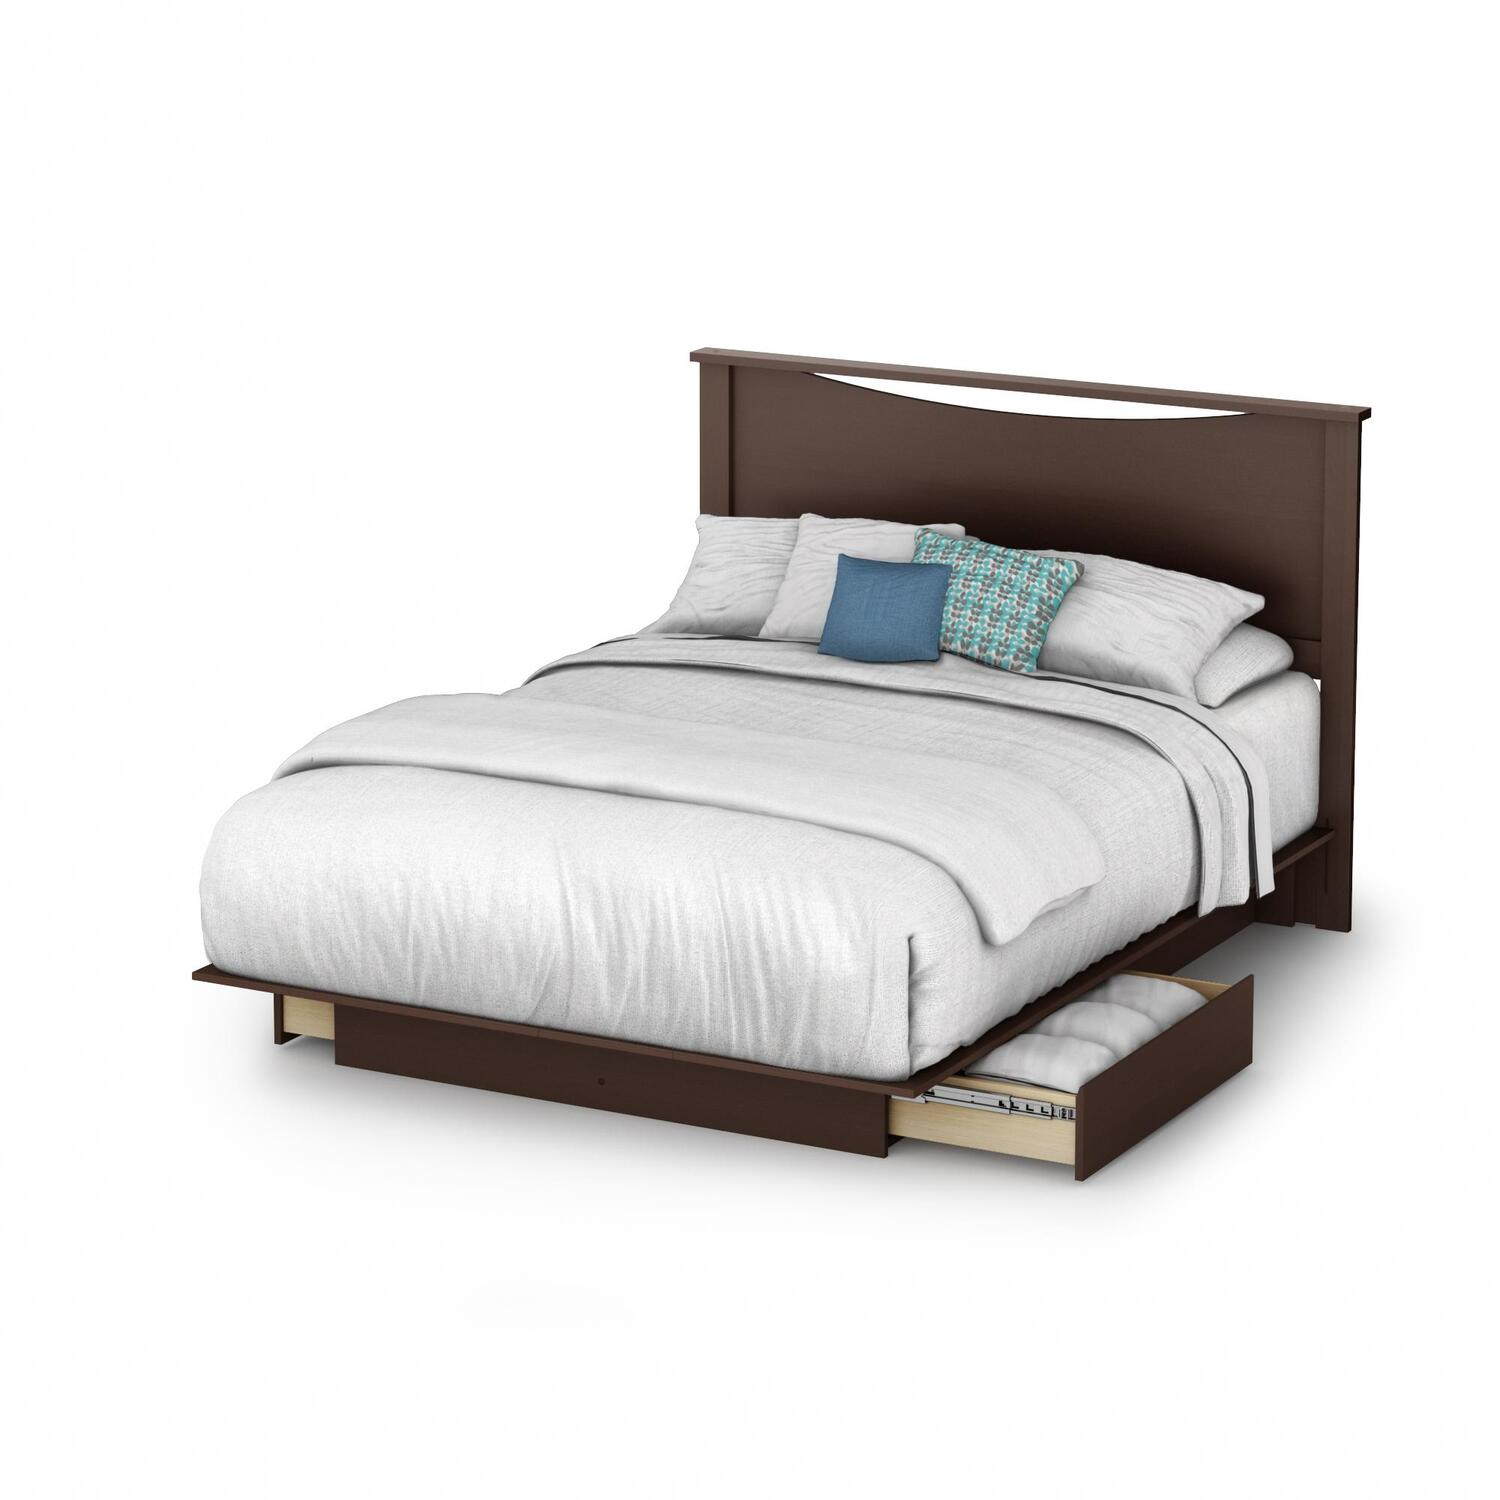 ... Shore 3159QPBD Back Bay Queen Platform Bed (w/ Drawers) & Headboard